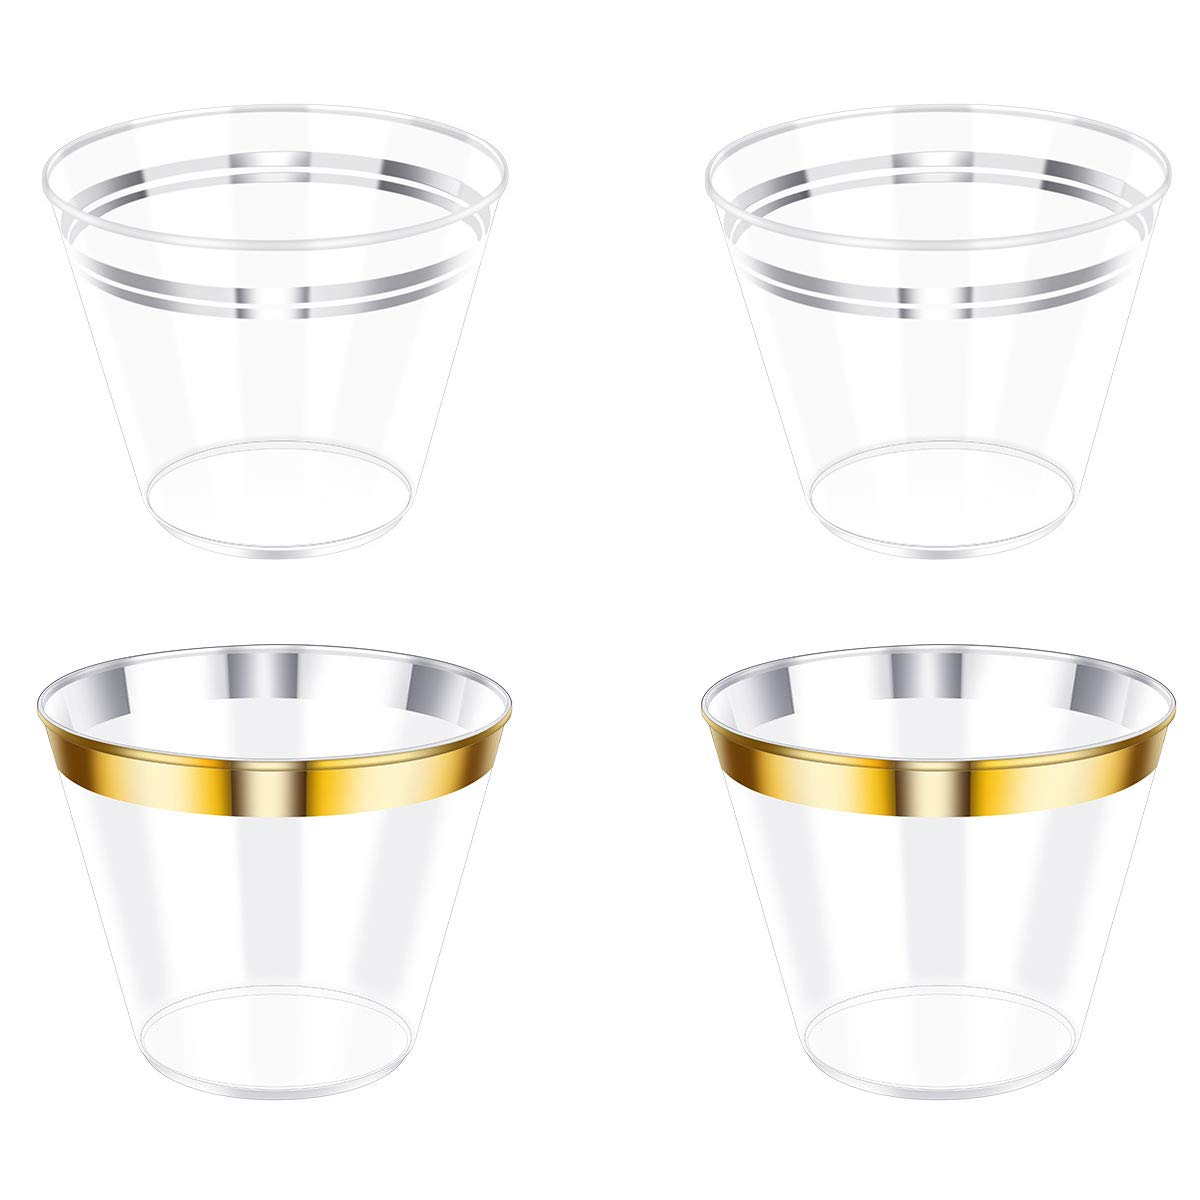 YoungRich 100PCS 9Oz Disposable Plastic Cups Party Cups cupsincluding 50PCS with Gold Rim and 50PCS with Silver Rim Clear Elegant for Home Office Party Wedding